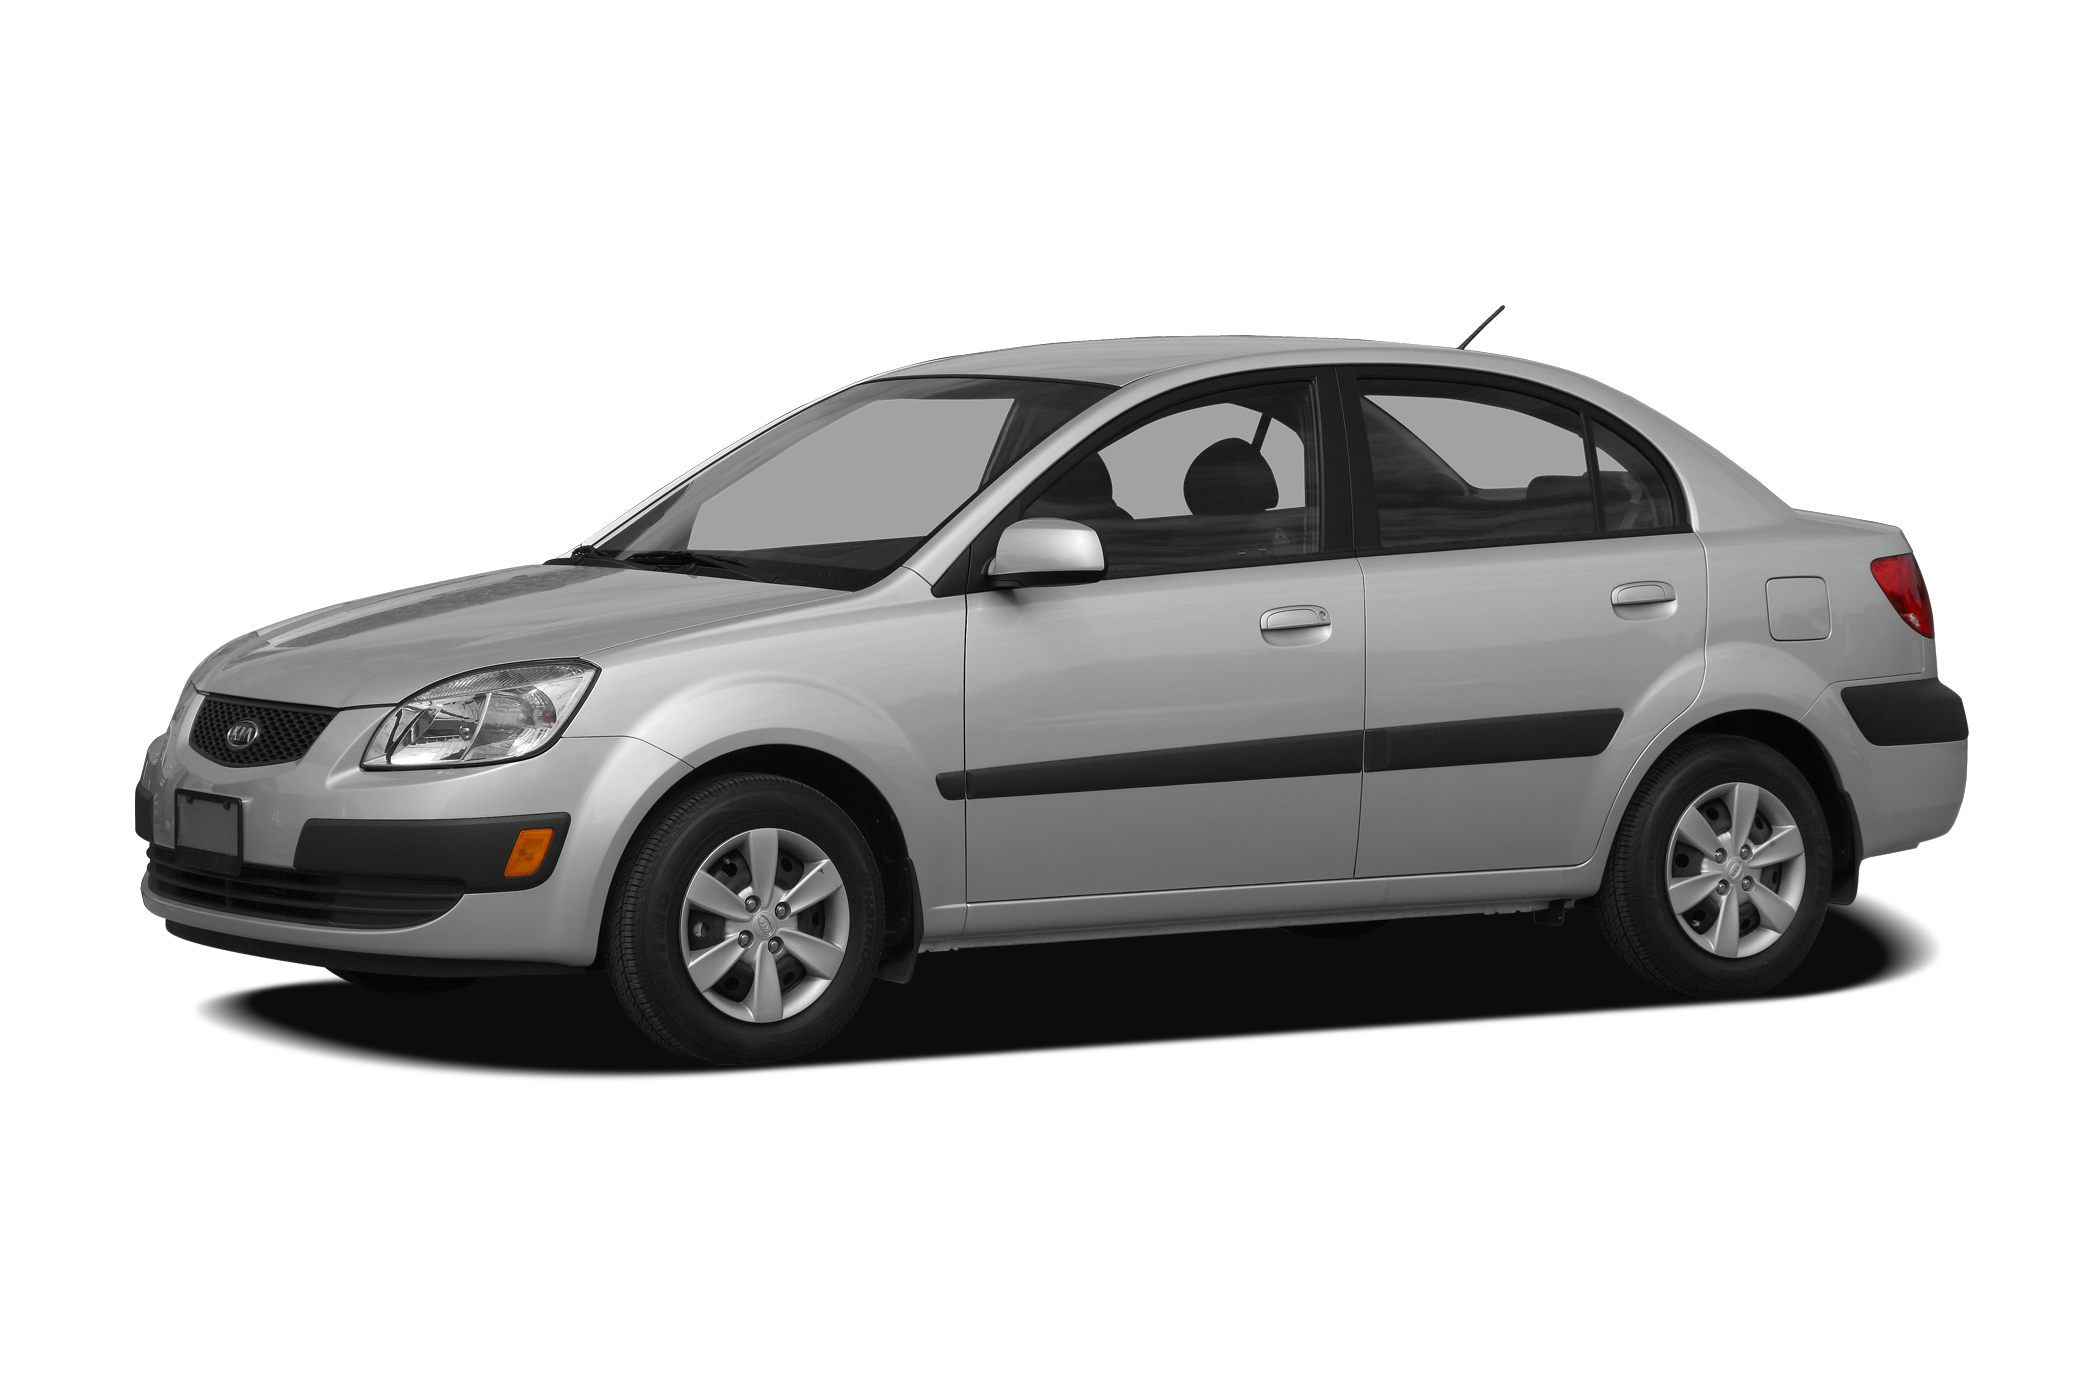 2009 Kia Rio LX Sedan for sale in Columbus for $7,995 with 108,433 miles.